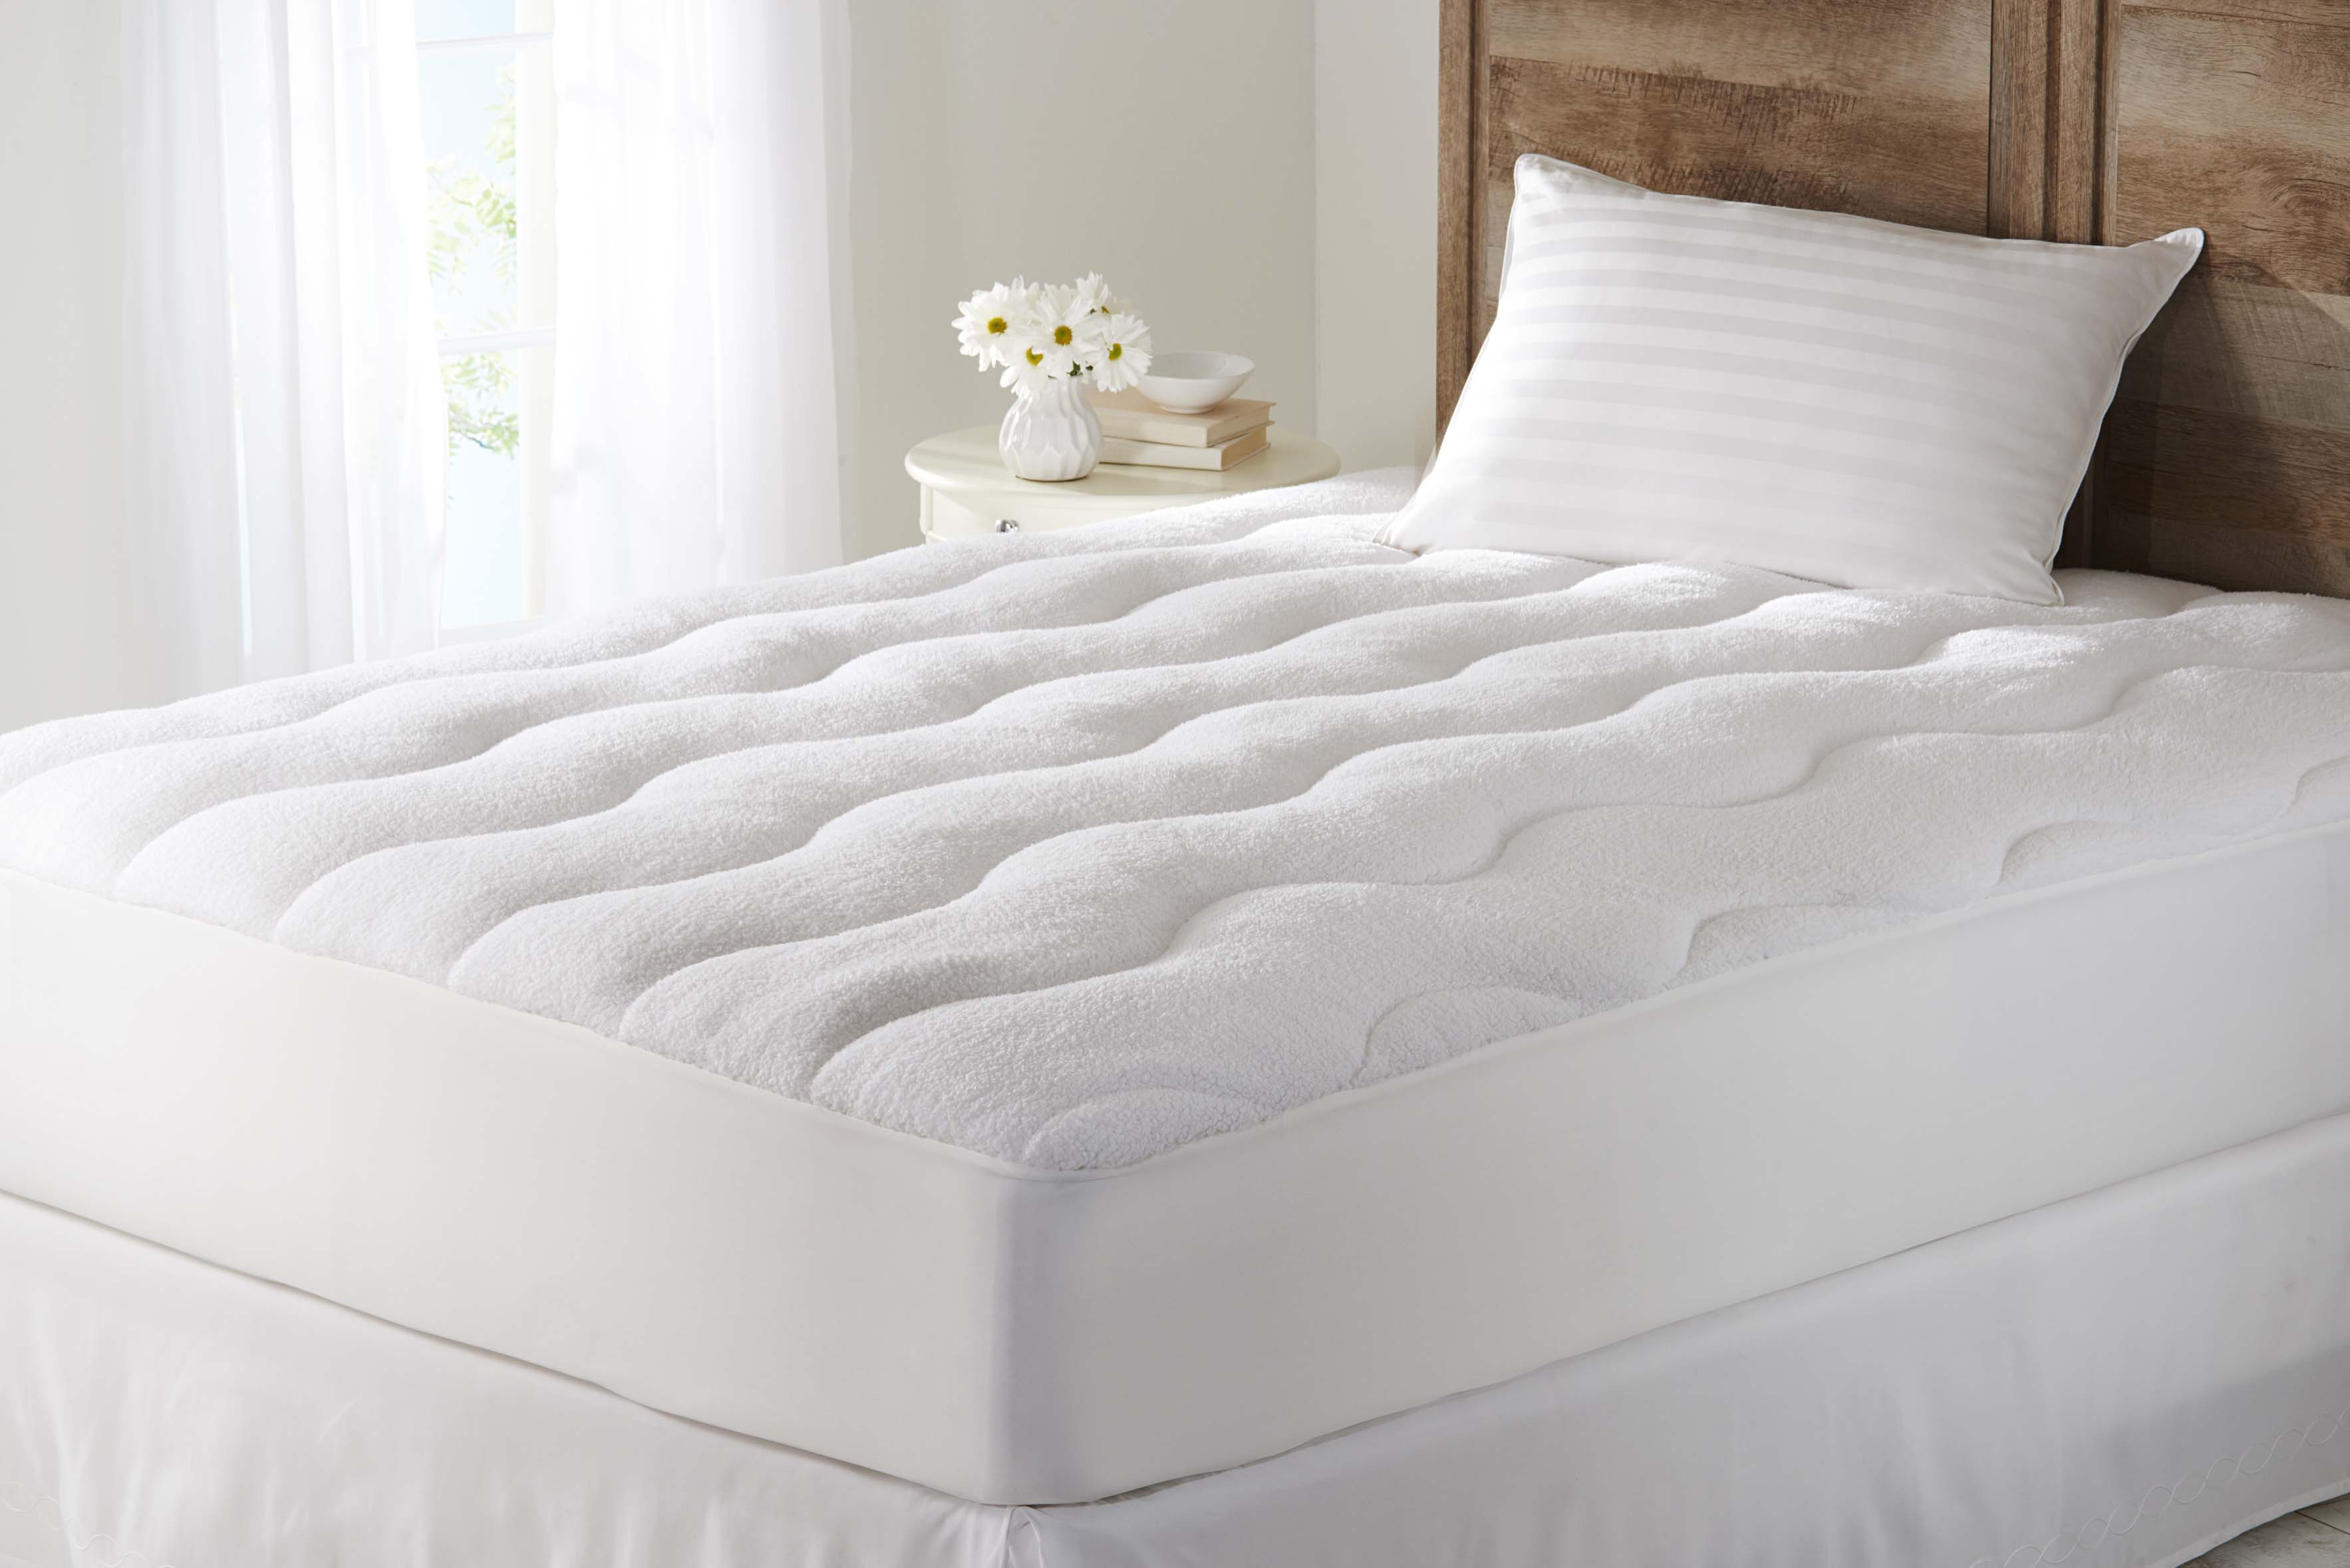 thick mattress pad. Better Homes And Gardens Year-Round Flip-Smart Mattress Extra Thick Pad, Pad